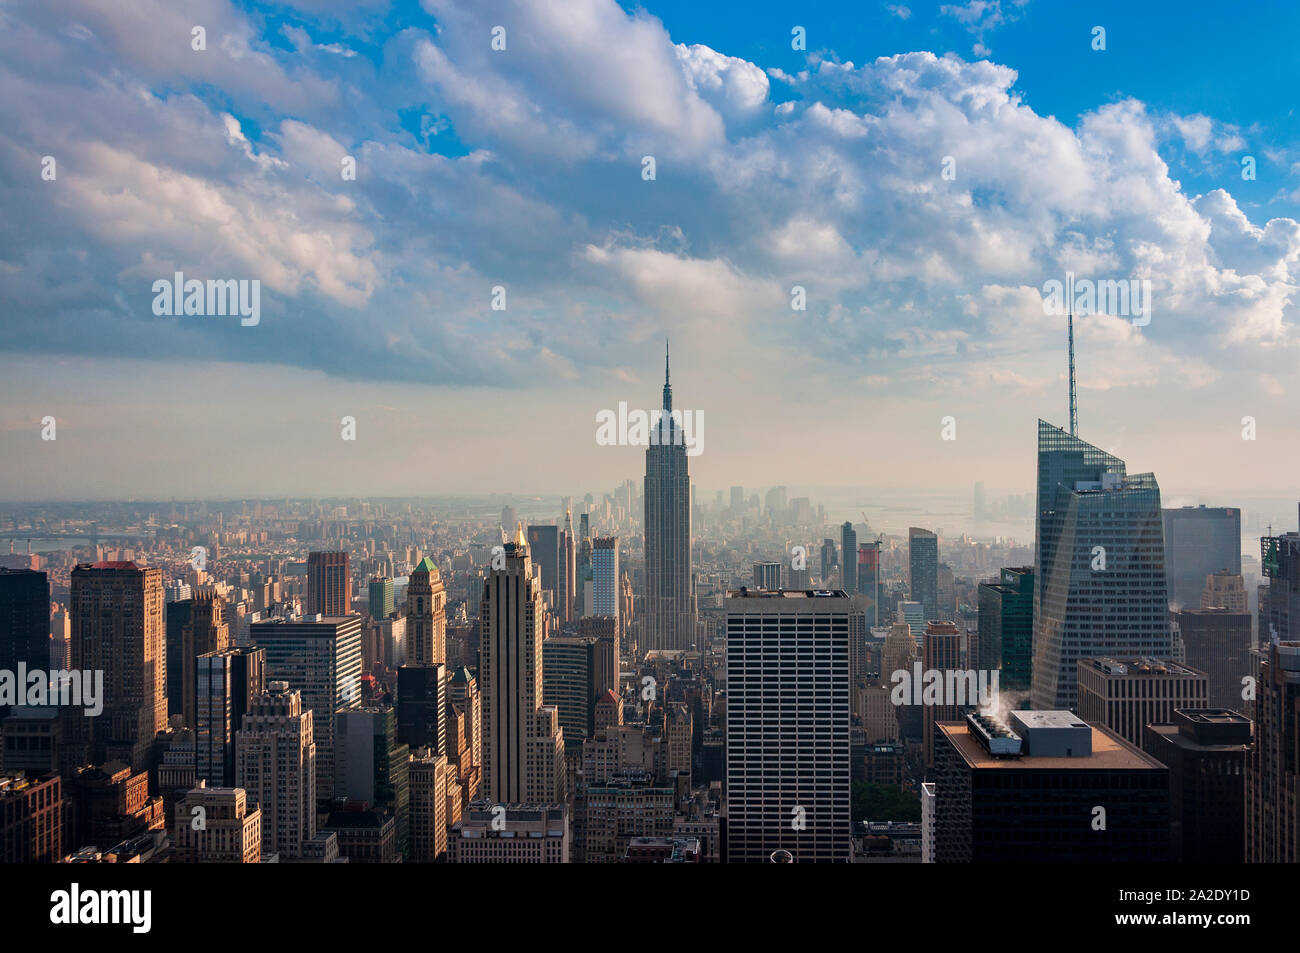 New York City, USA - June 10, 2010: View of  the Manhattan skyline in New Your City, USA. Stock Photo